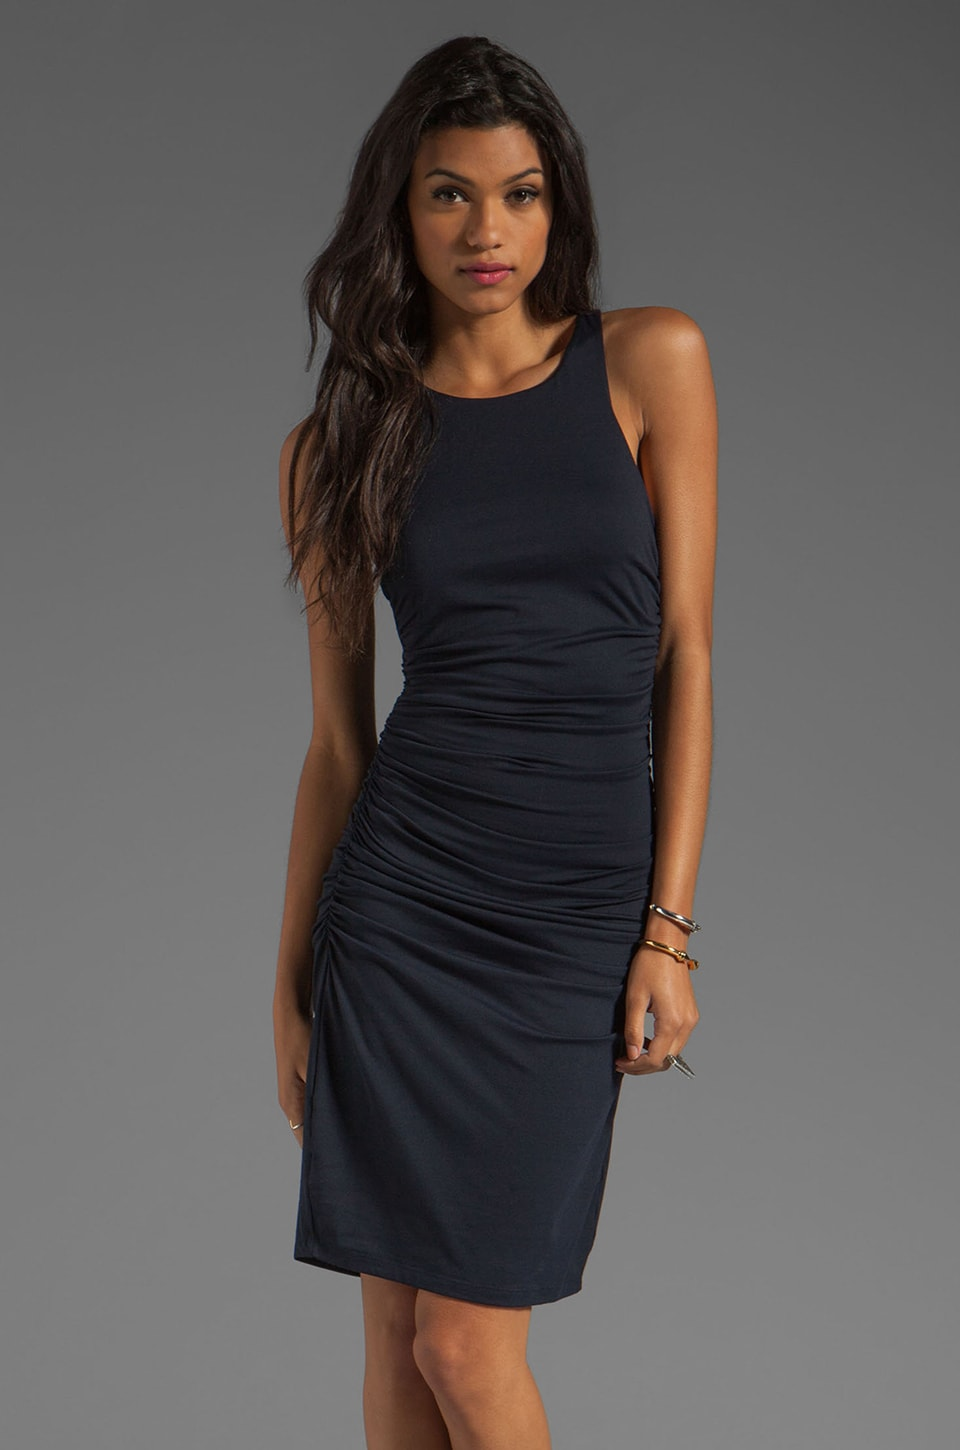 Susana Monaco Light Supplex Double Racer Tank Dress in Midnight